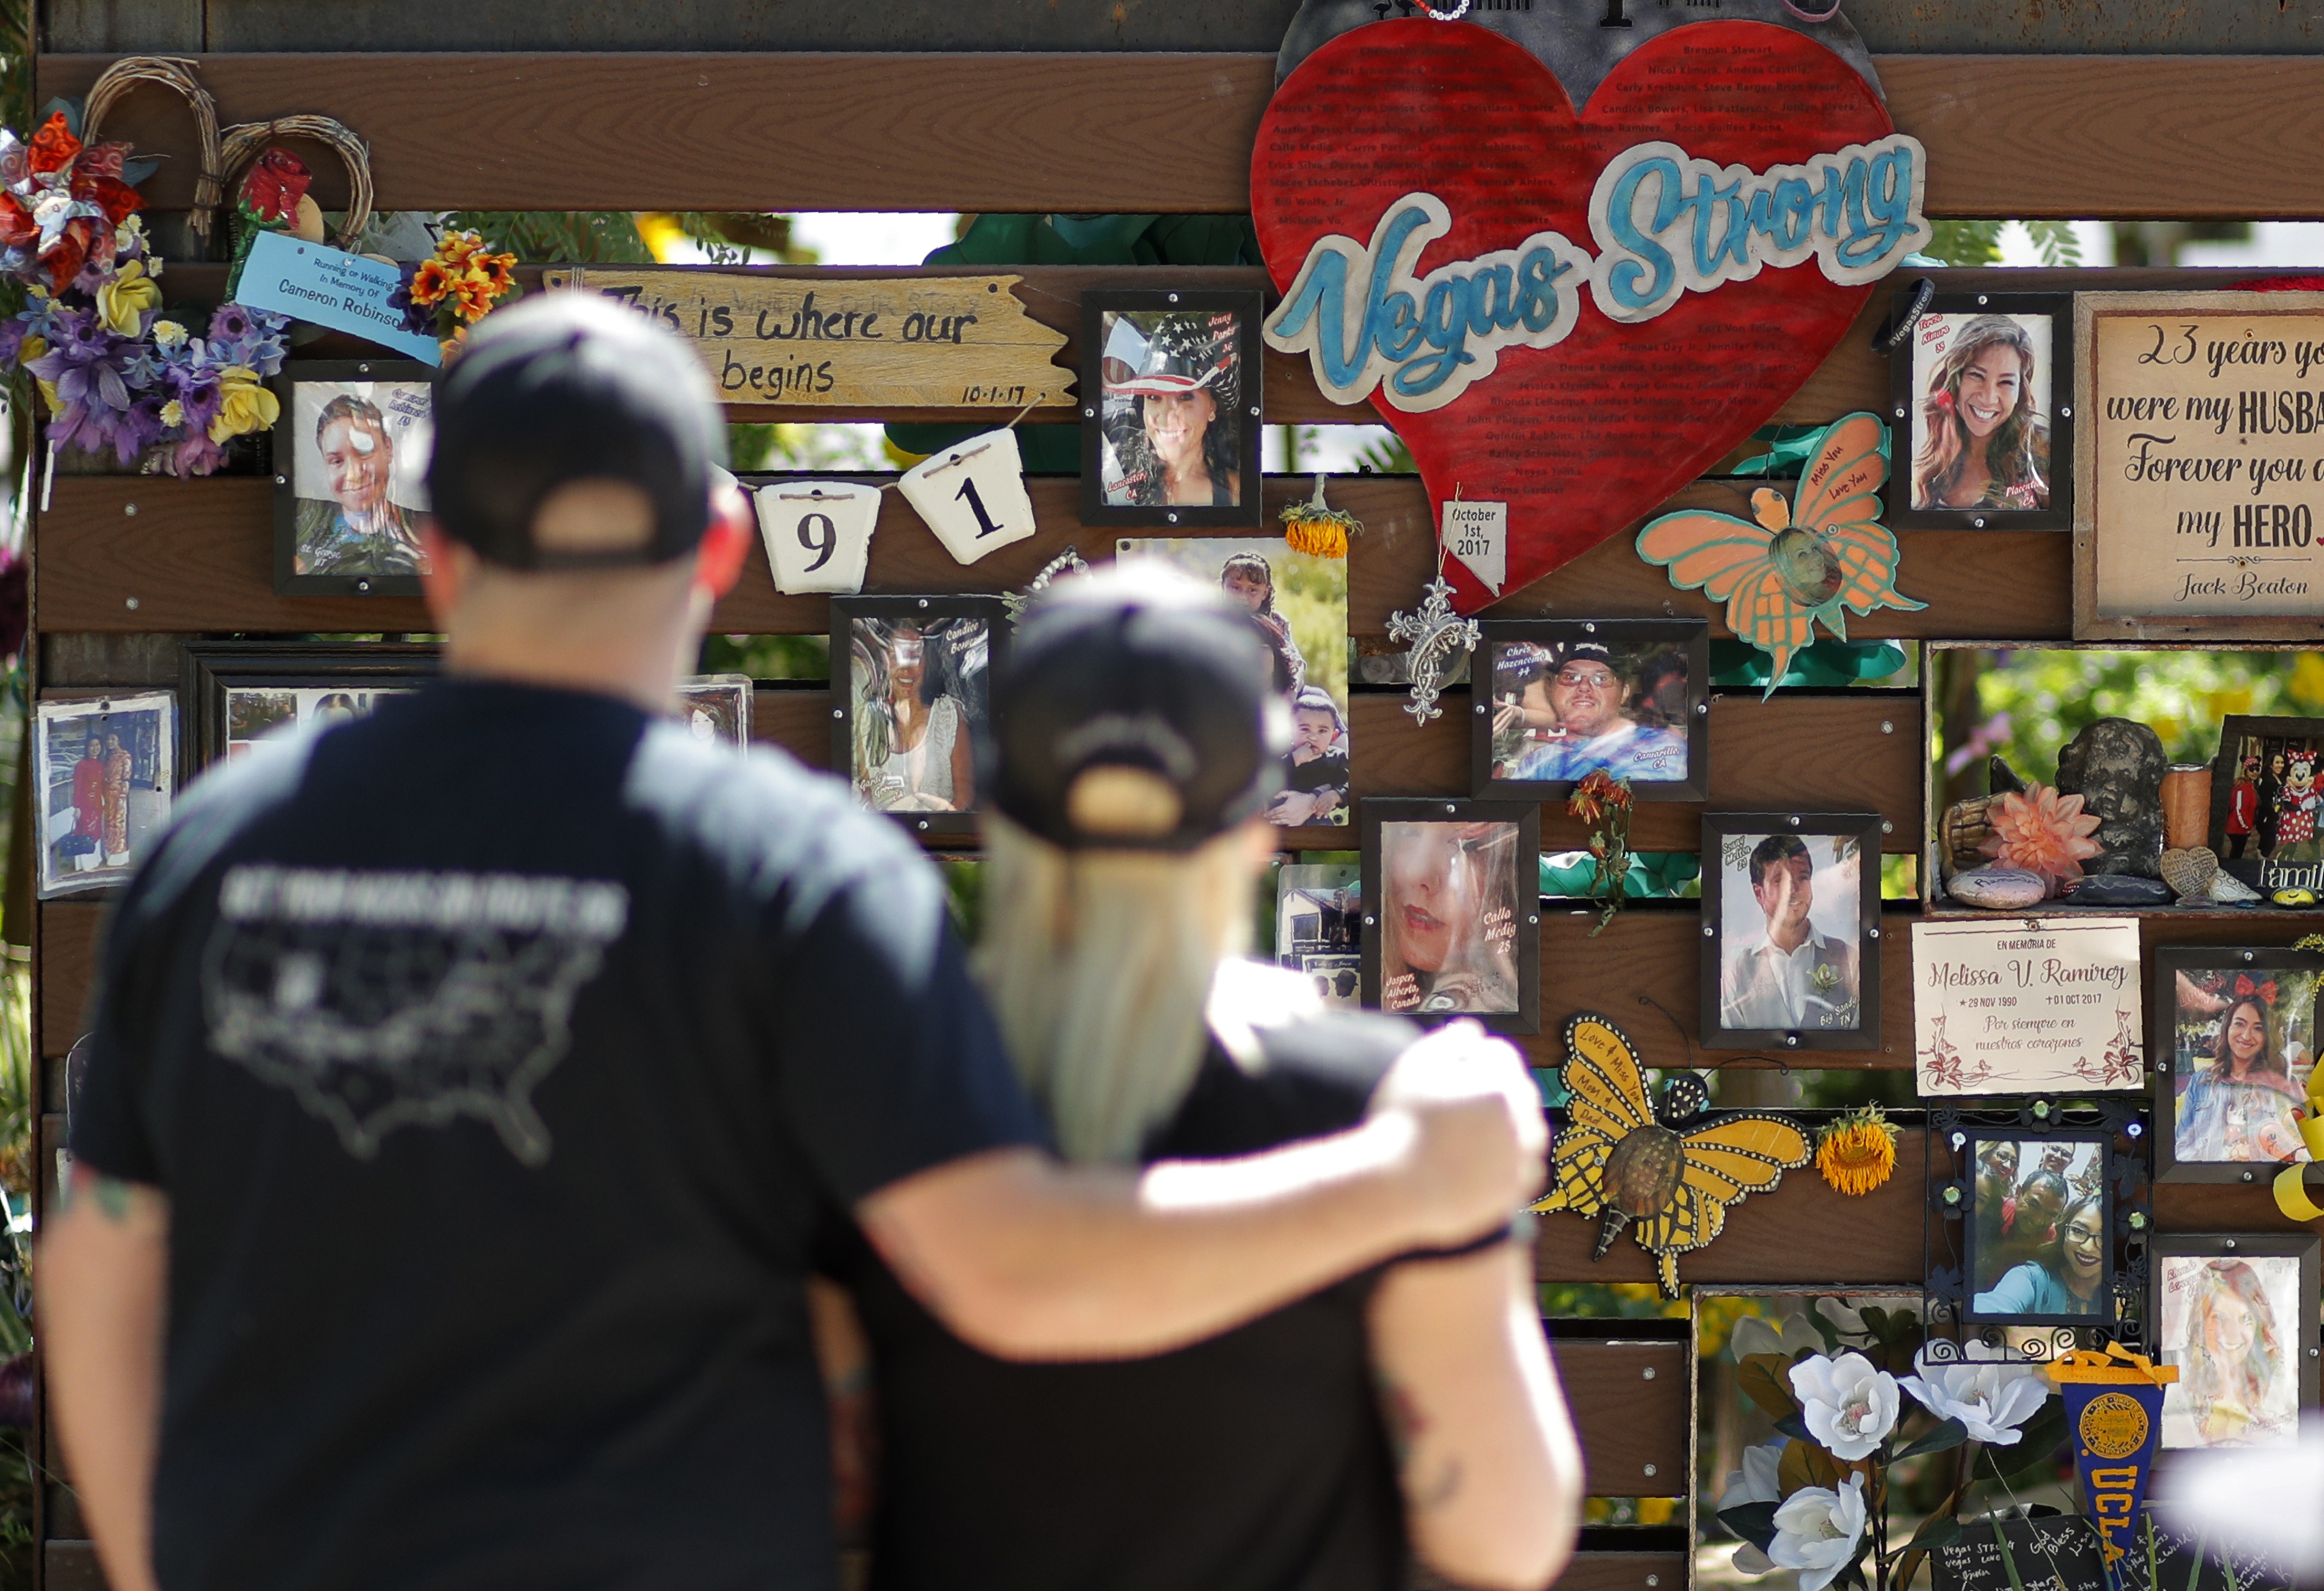 Woman paralyzed during Las Vegas shooting becomes its 59th victim